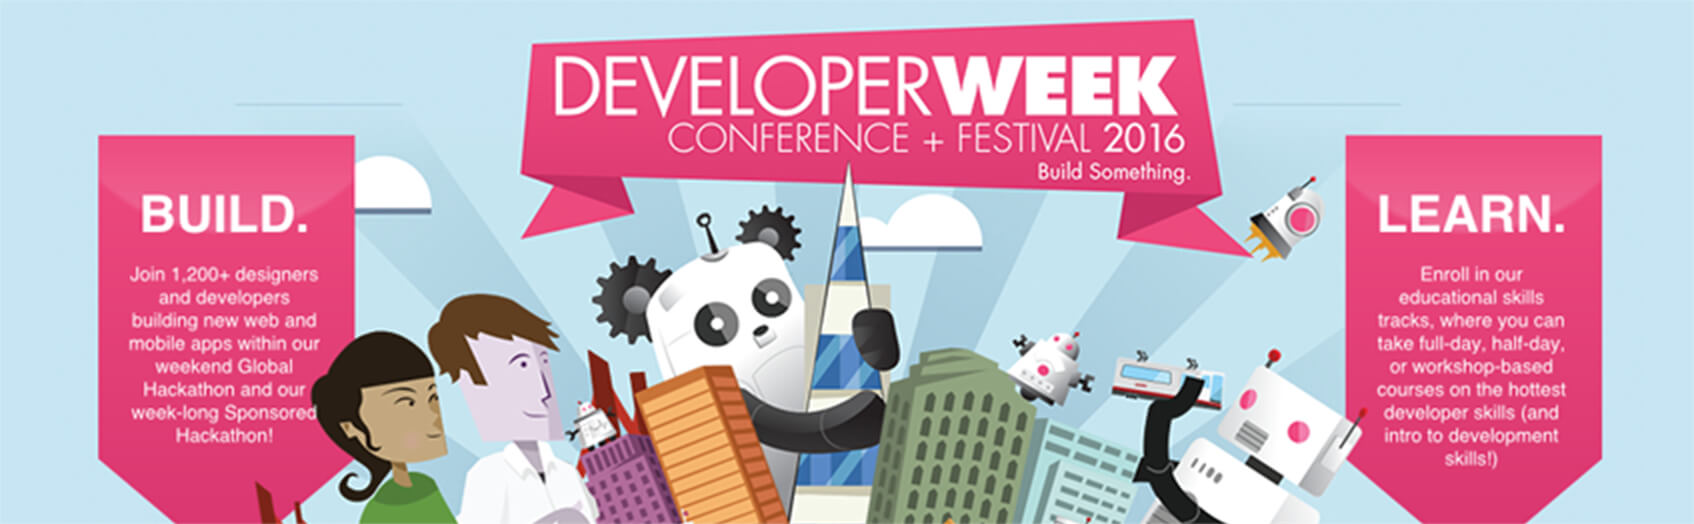 Developer Week Conference in Top tech events 2016 guide by Redwerk